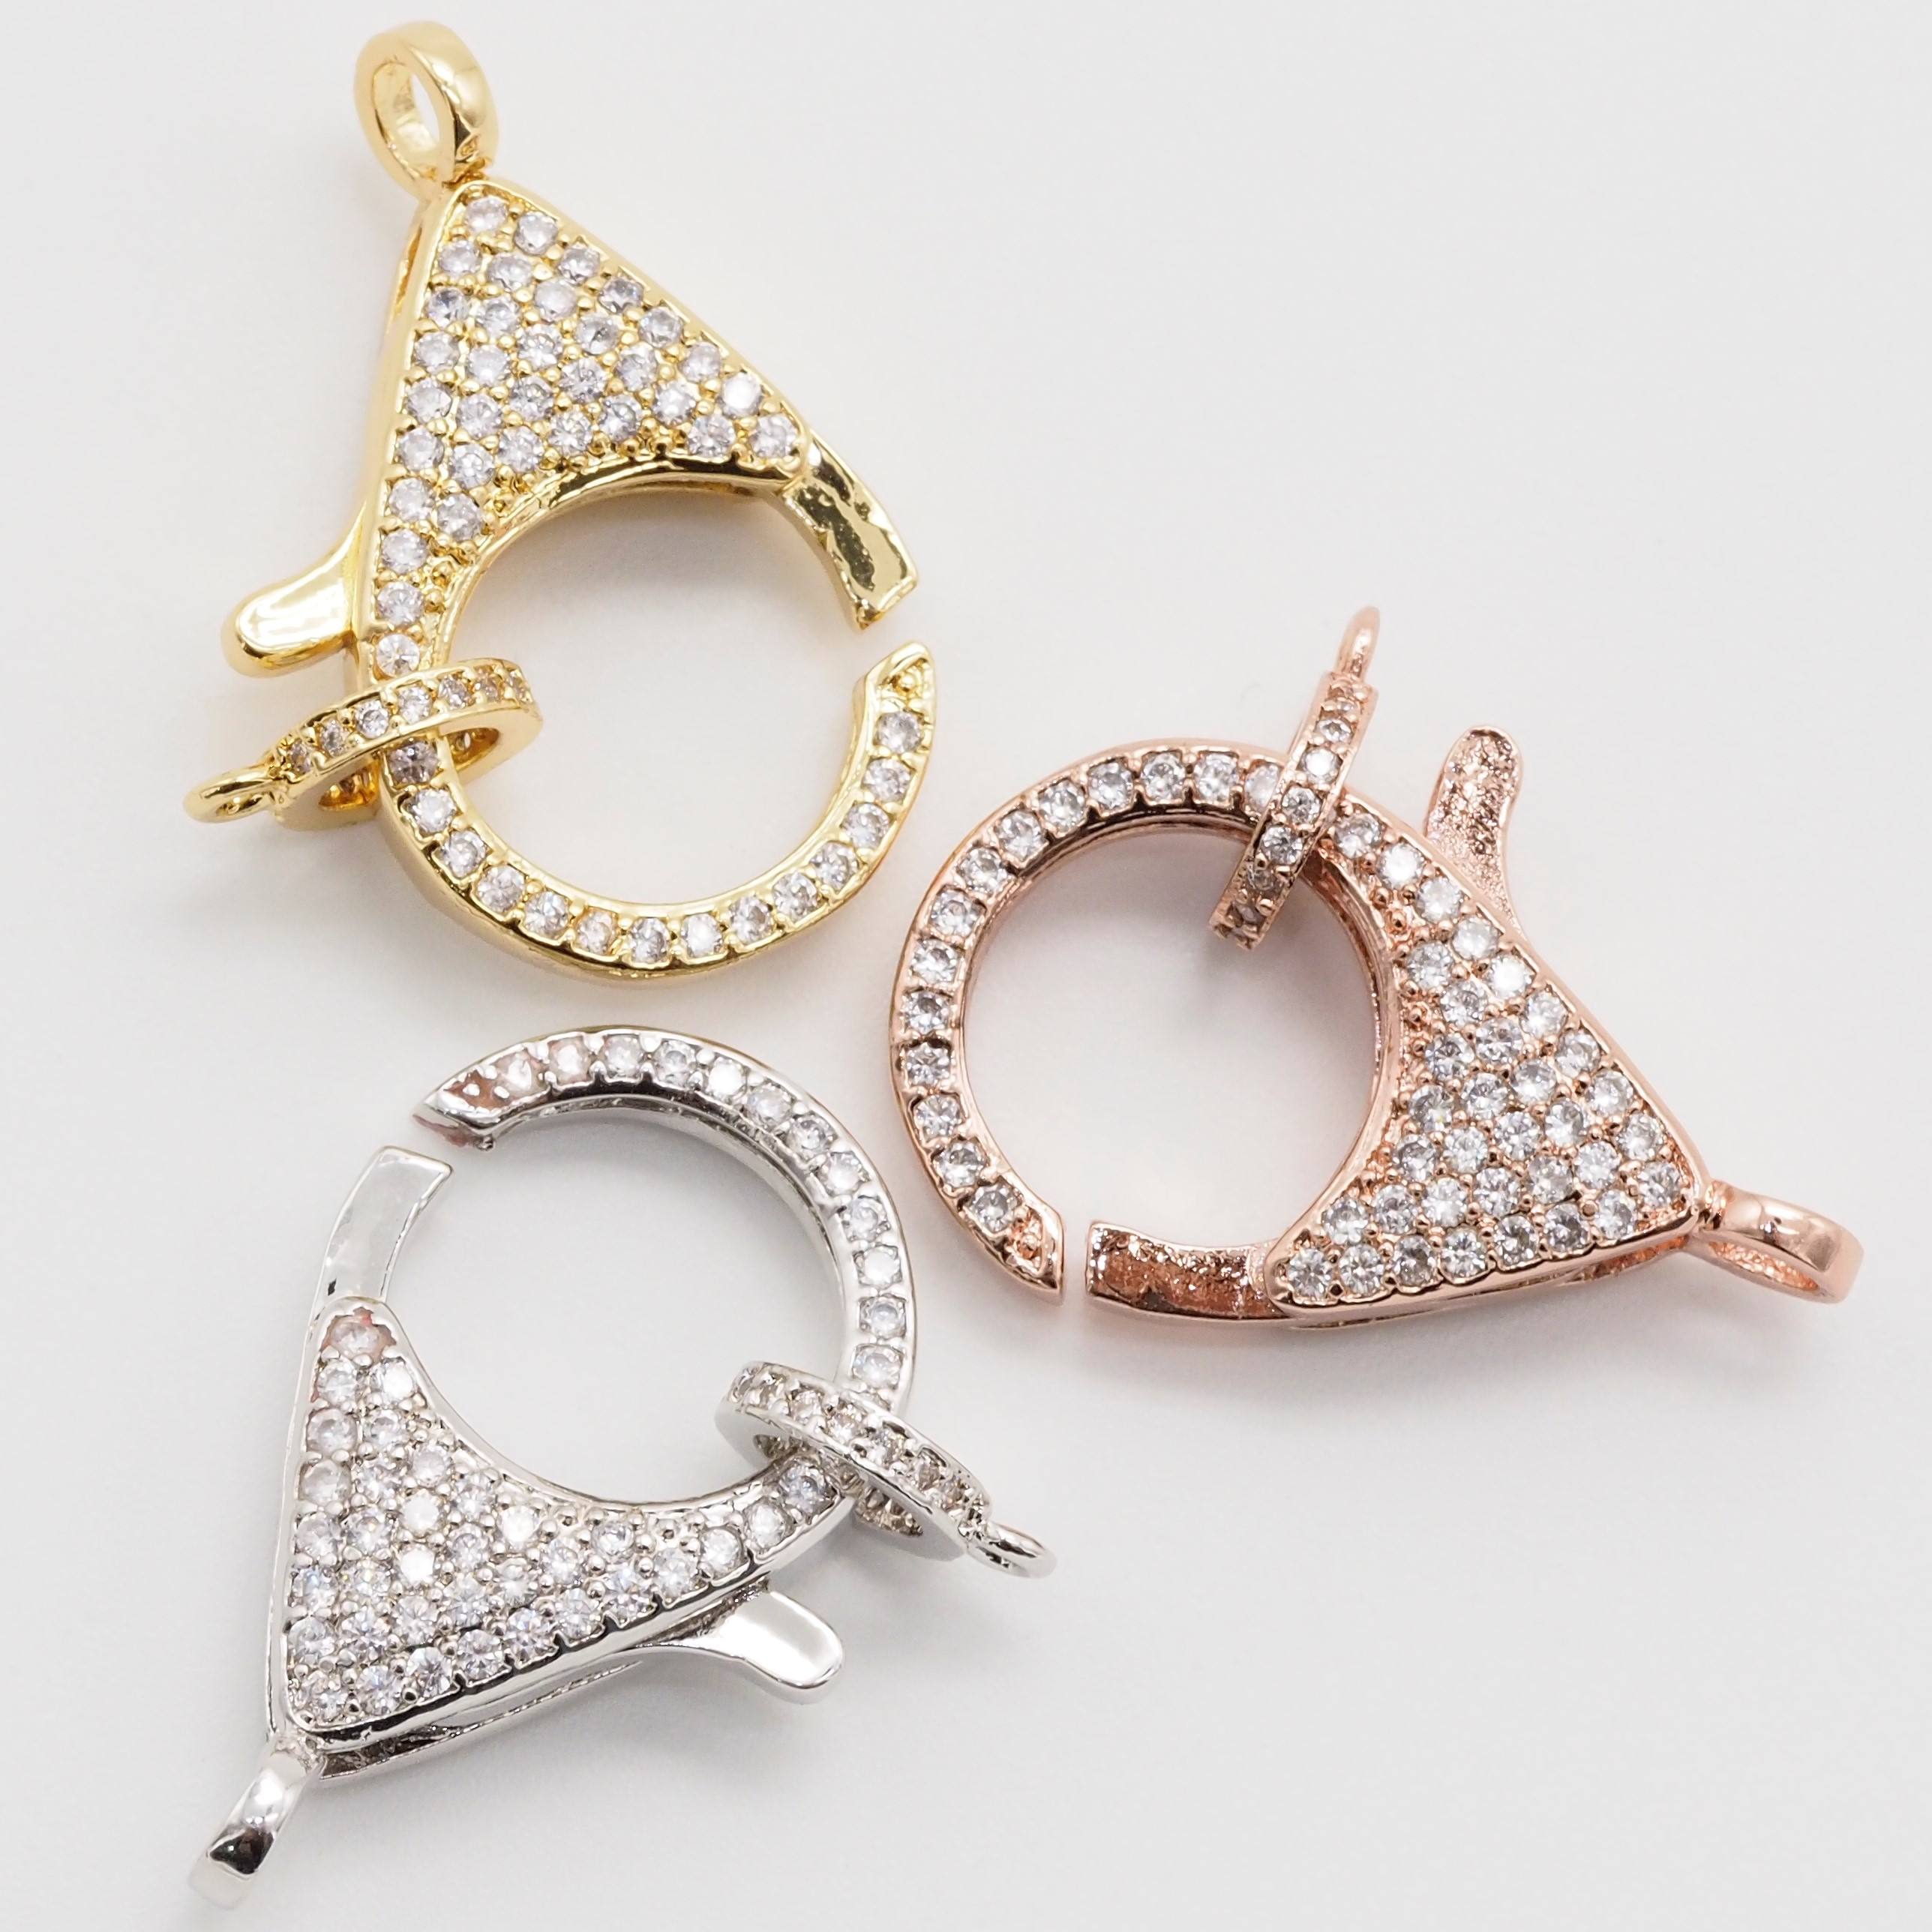 Hot sale wholesale newest style gold plated pave diamond lobster clasp